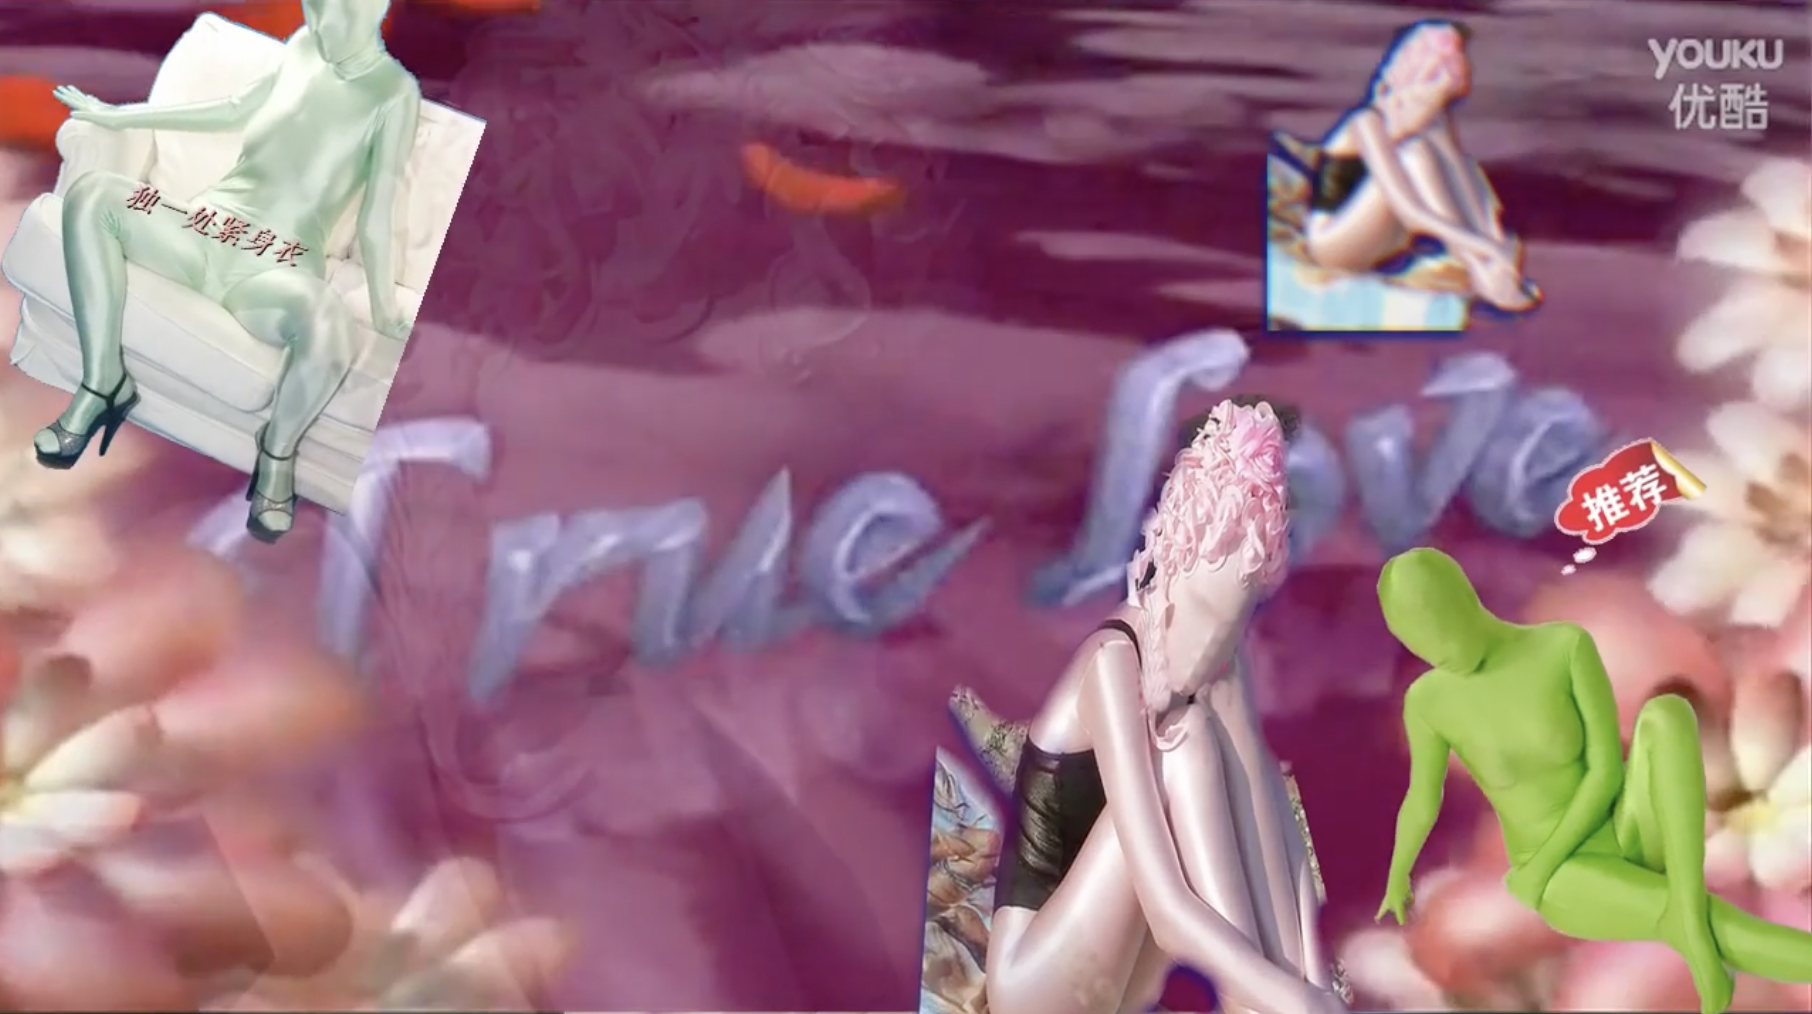 """Video Still: Product photos of colorful full-body suits from taobao.com, collaged over a hazy purple background with the words """"True love"""" visible in the back"""